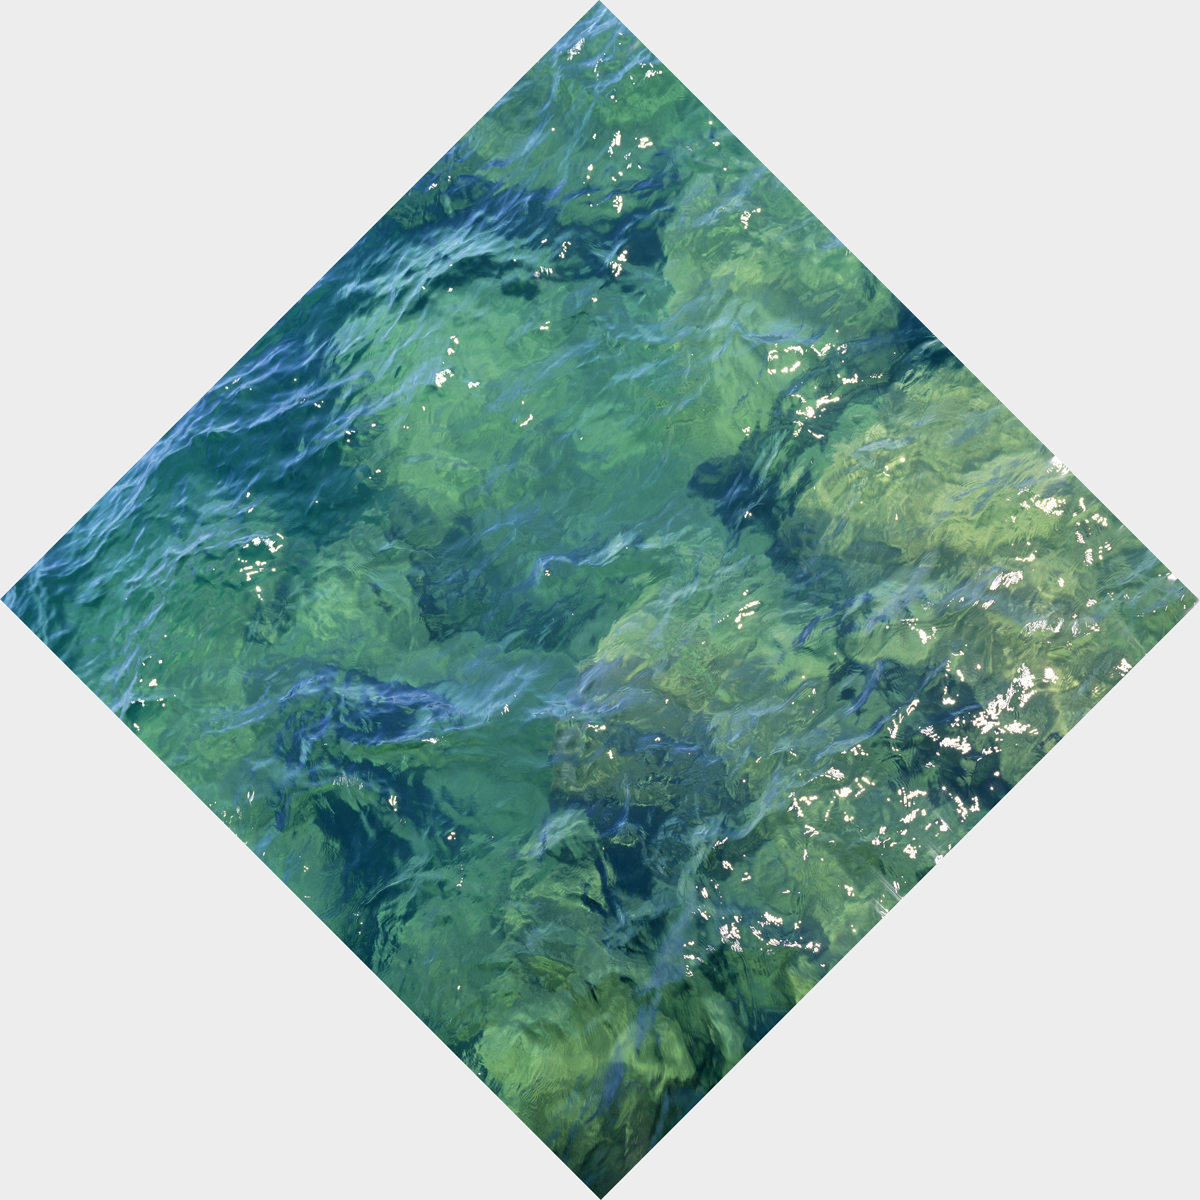 """ON THE TRAIL OF THE LIVING: GREEN WATERS, SUPERIOR, Color Photograph Printed on Archival Paper, 30 x 30"""" framed 34 x 34"""""""